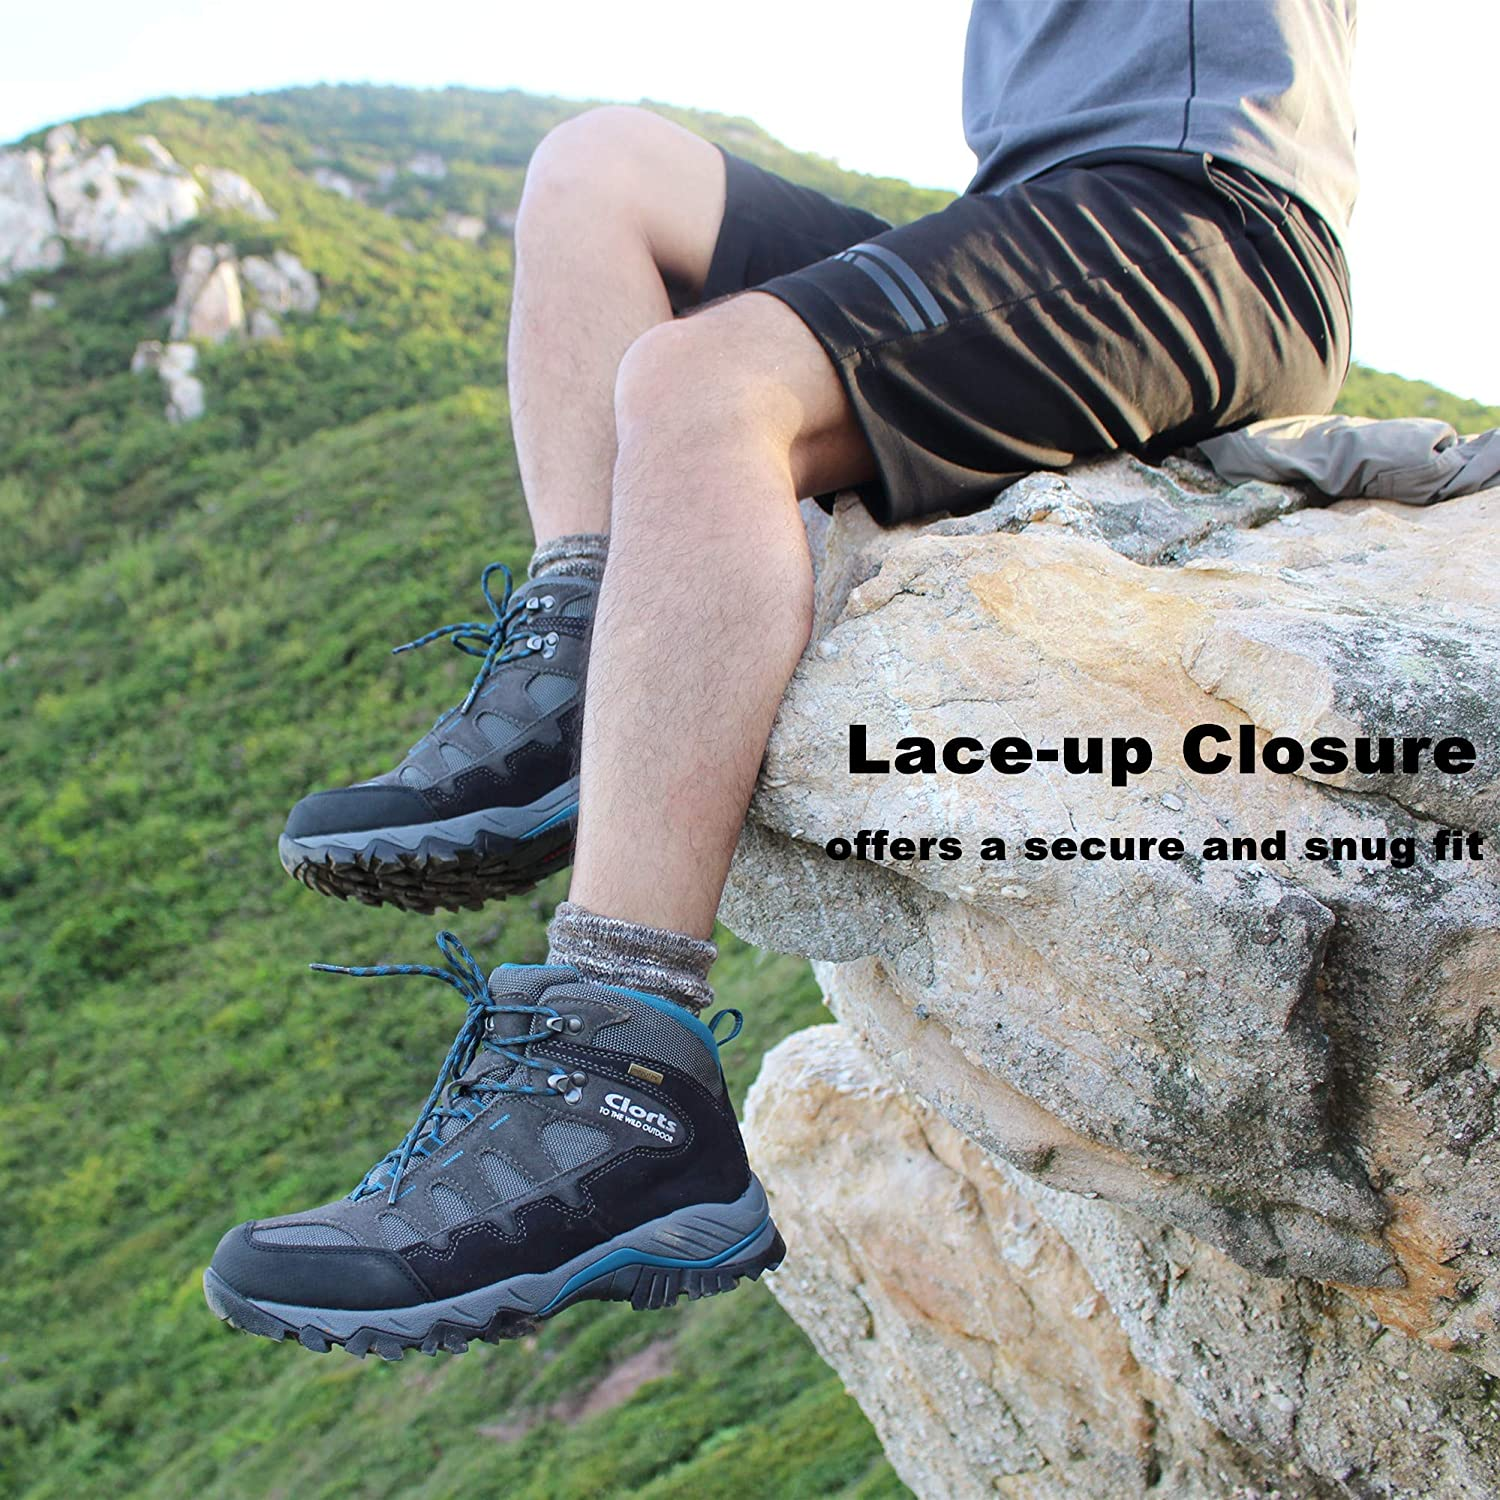 Clorts Mens Mid Hiking Boot Hiker Leather Waterproof Lightweight Outdoor Backpacking Trekking Shoe